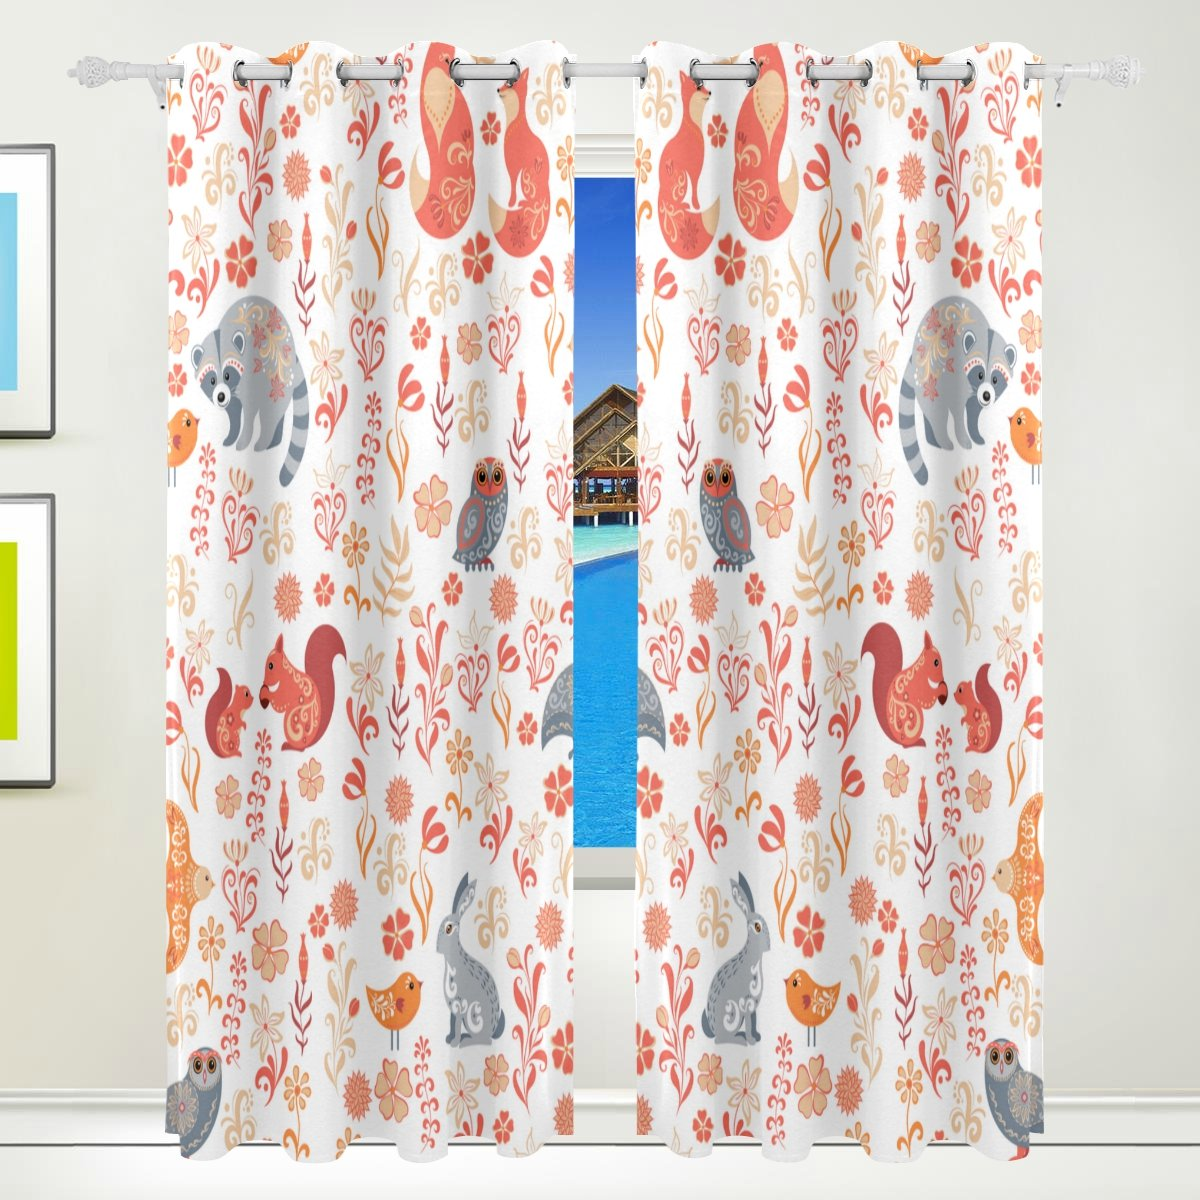 Vantaso Window Curtains 84 Inch Long Cute Forest Animal Pattern Fox Bird for Kids Girls Boys Bedroom Living Room Polyester 2 Pannels